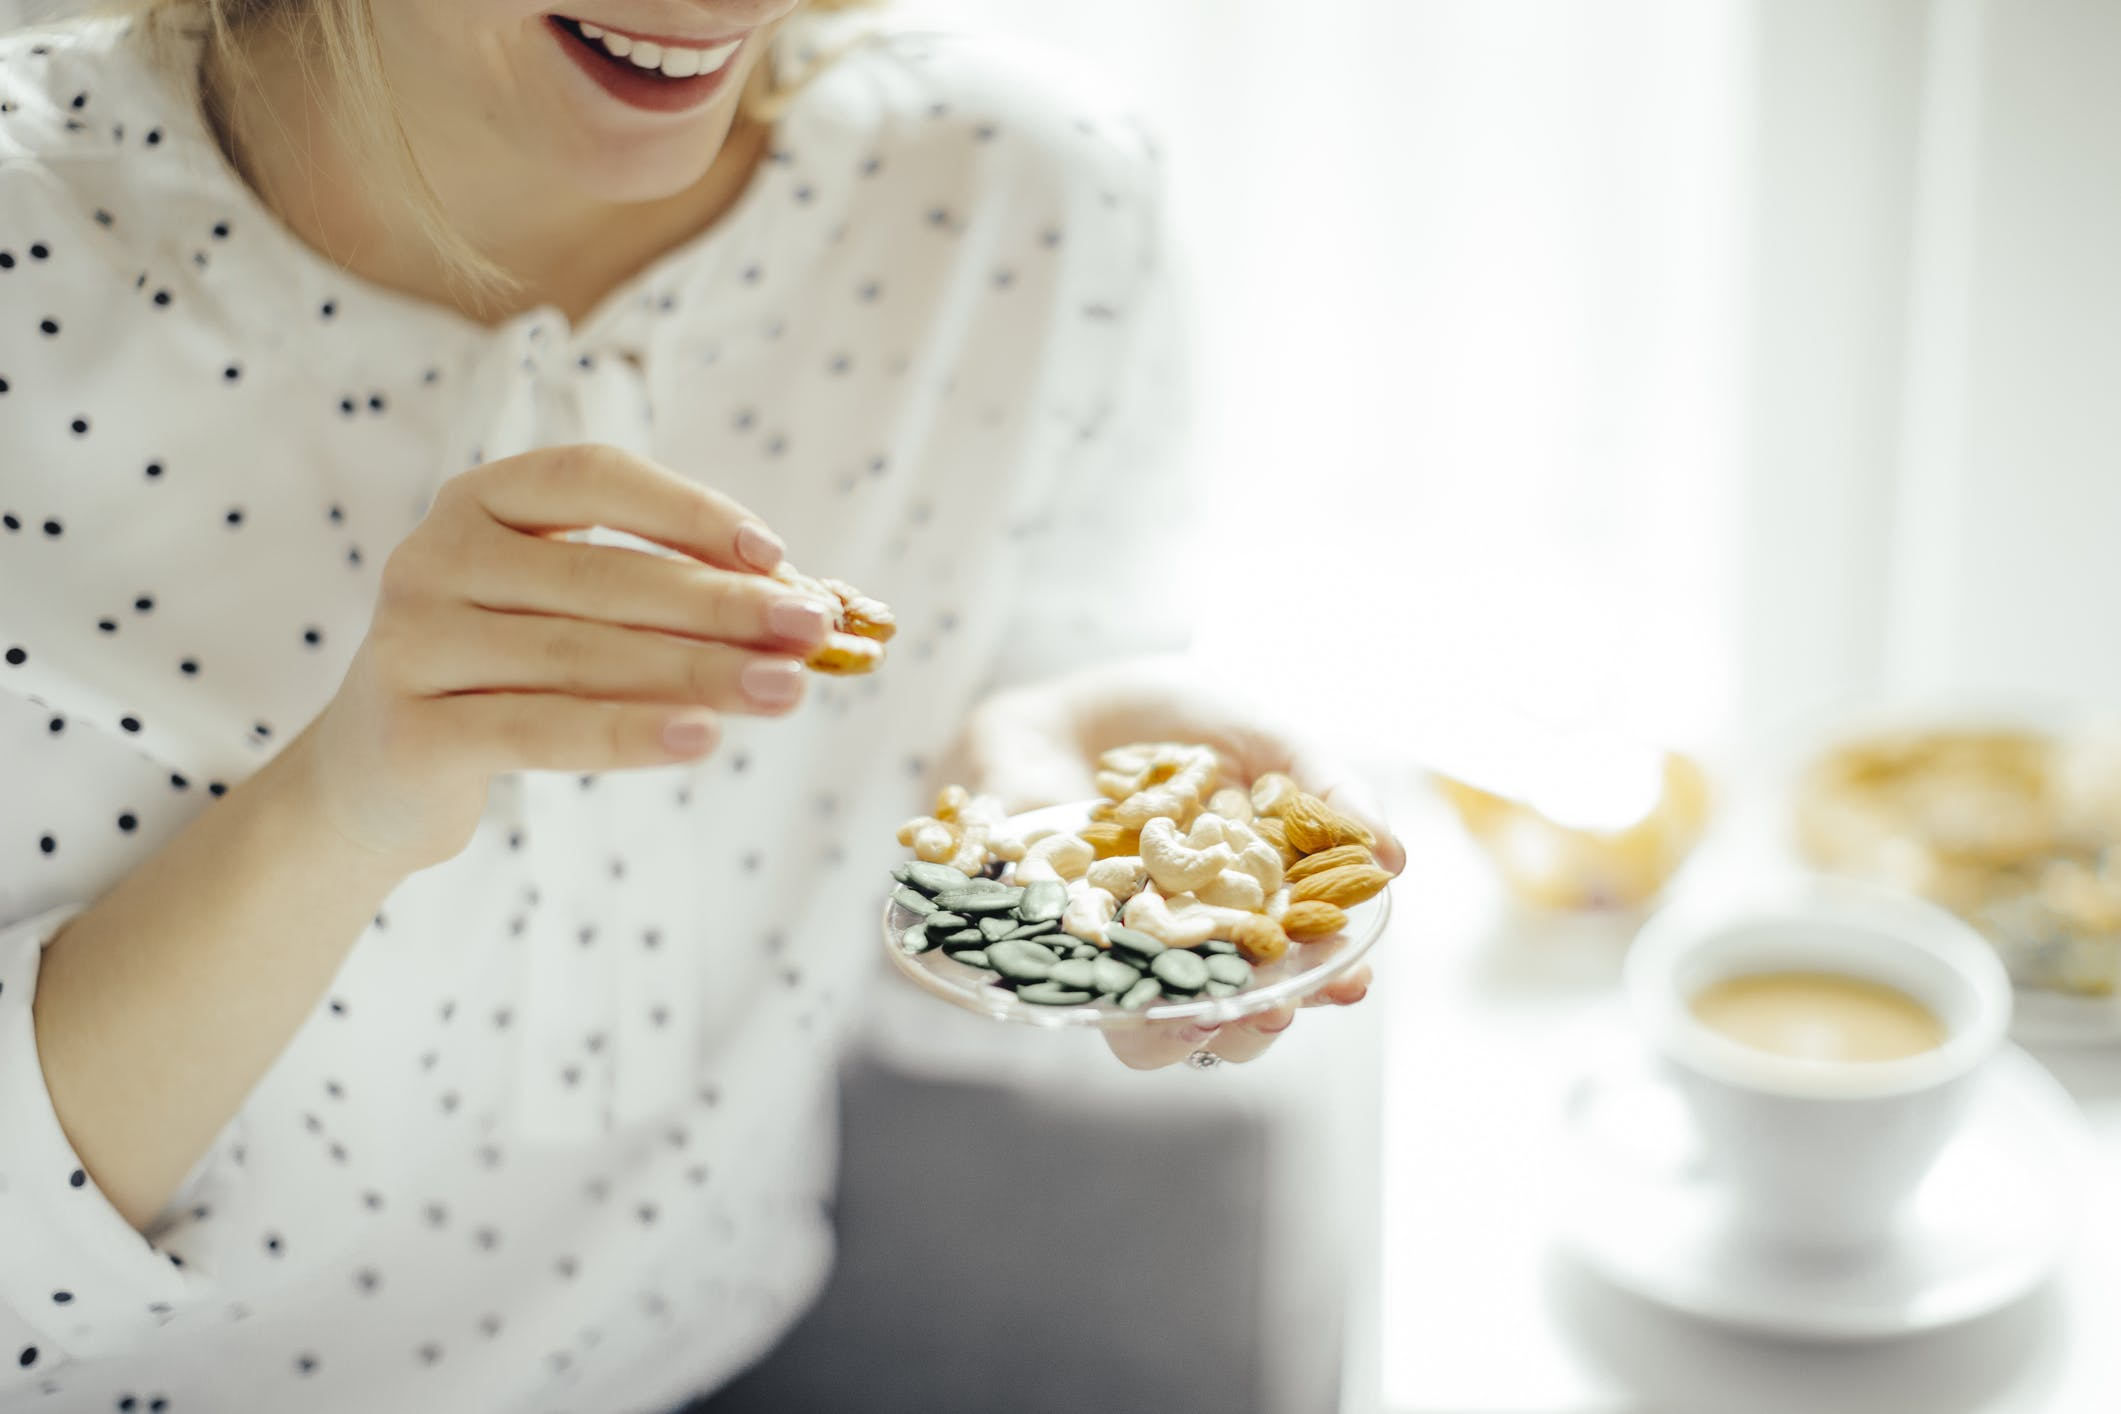 #2 weight-loss tip: Eat only when hungry